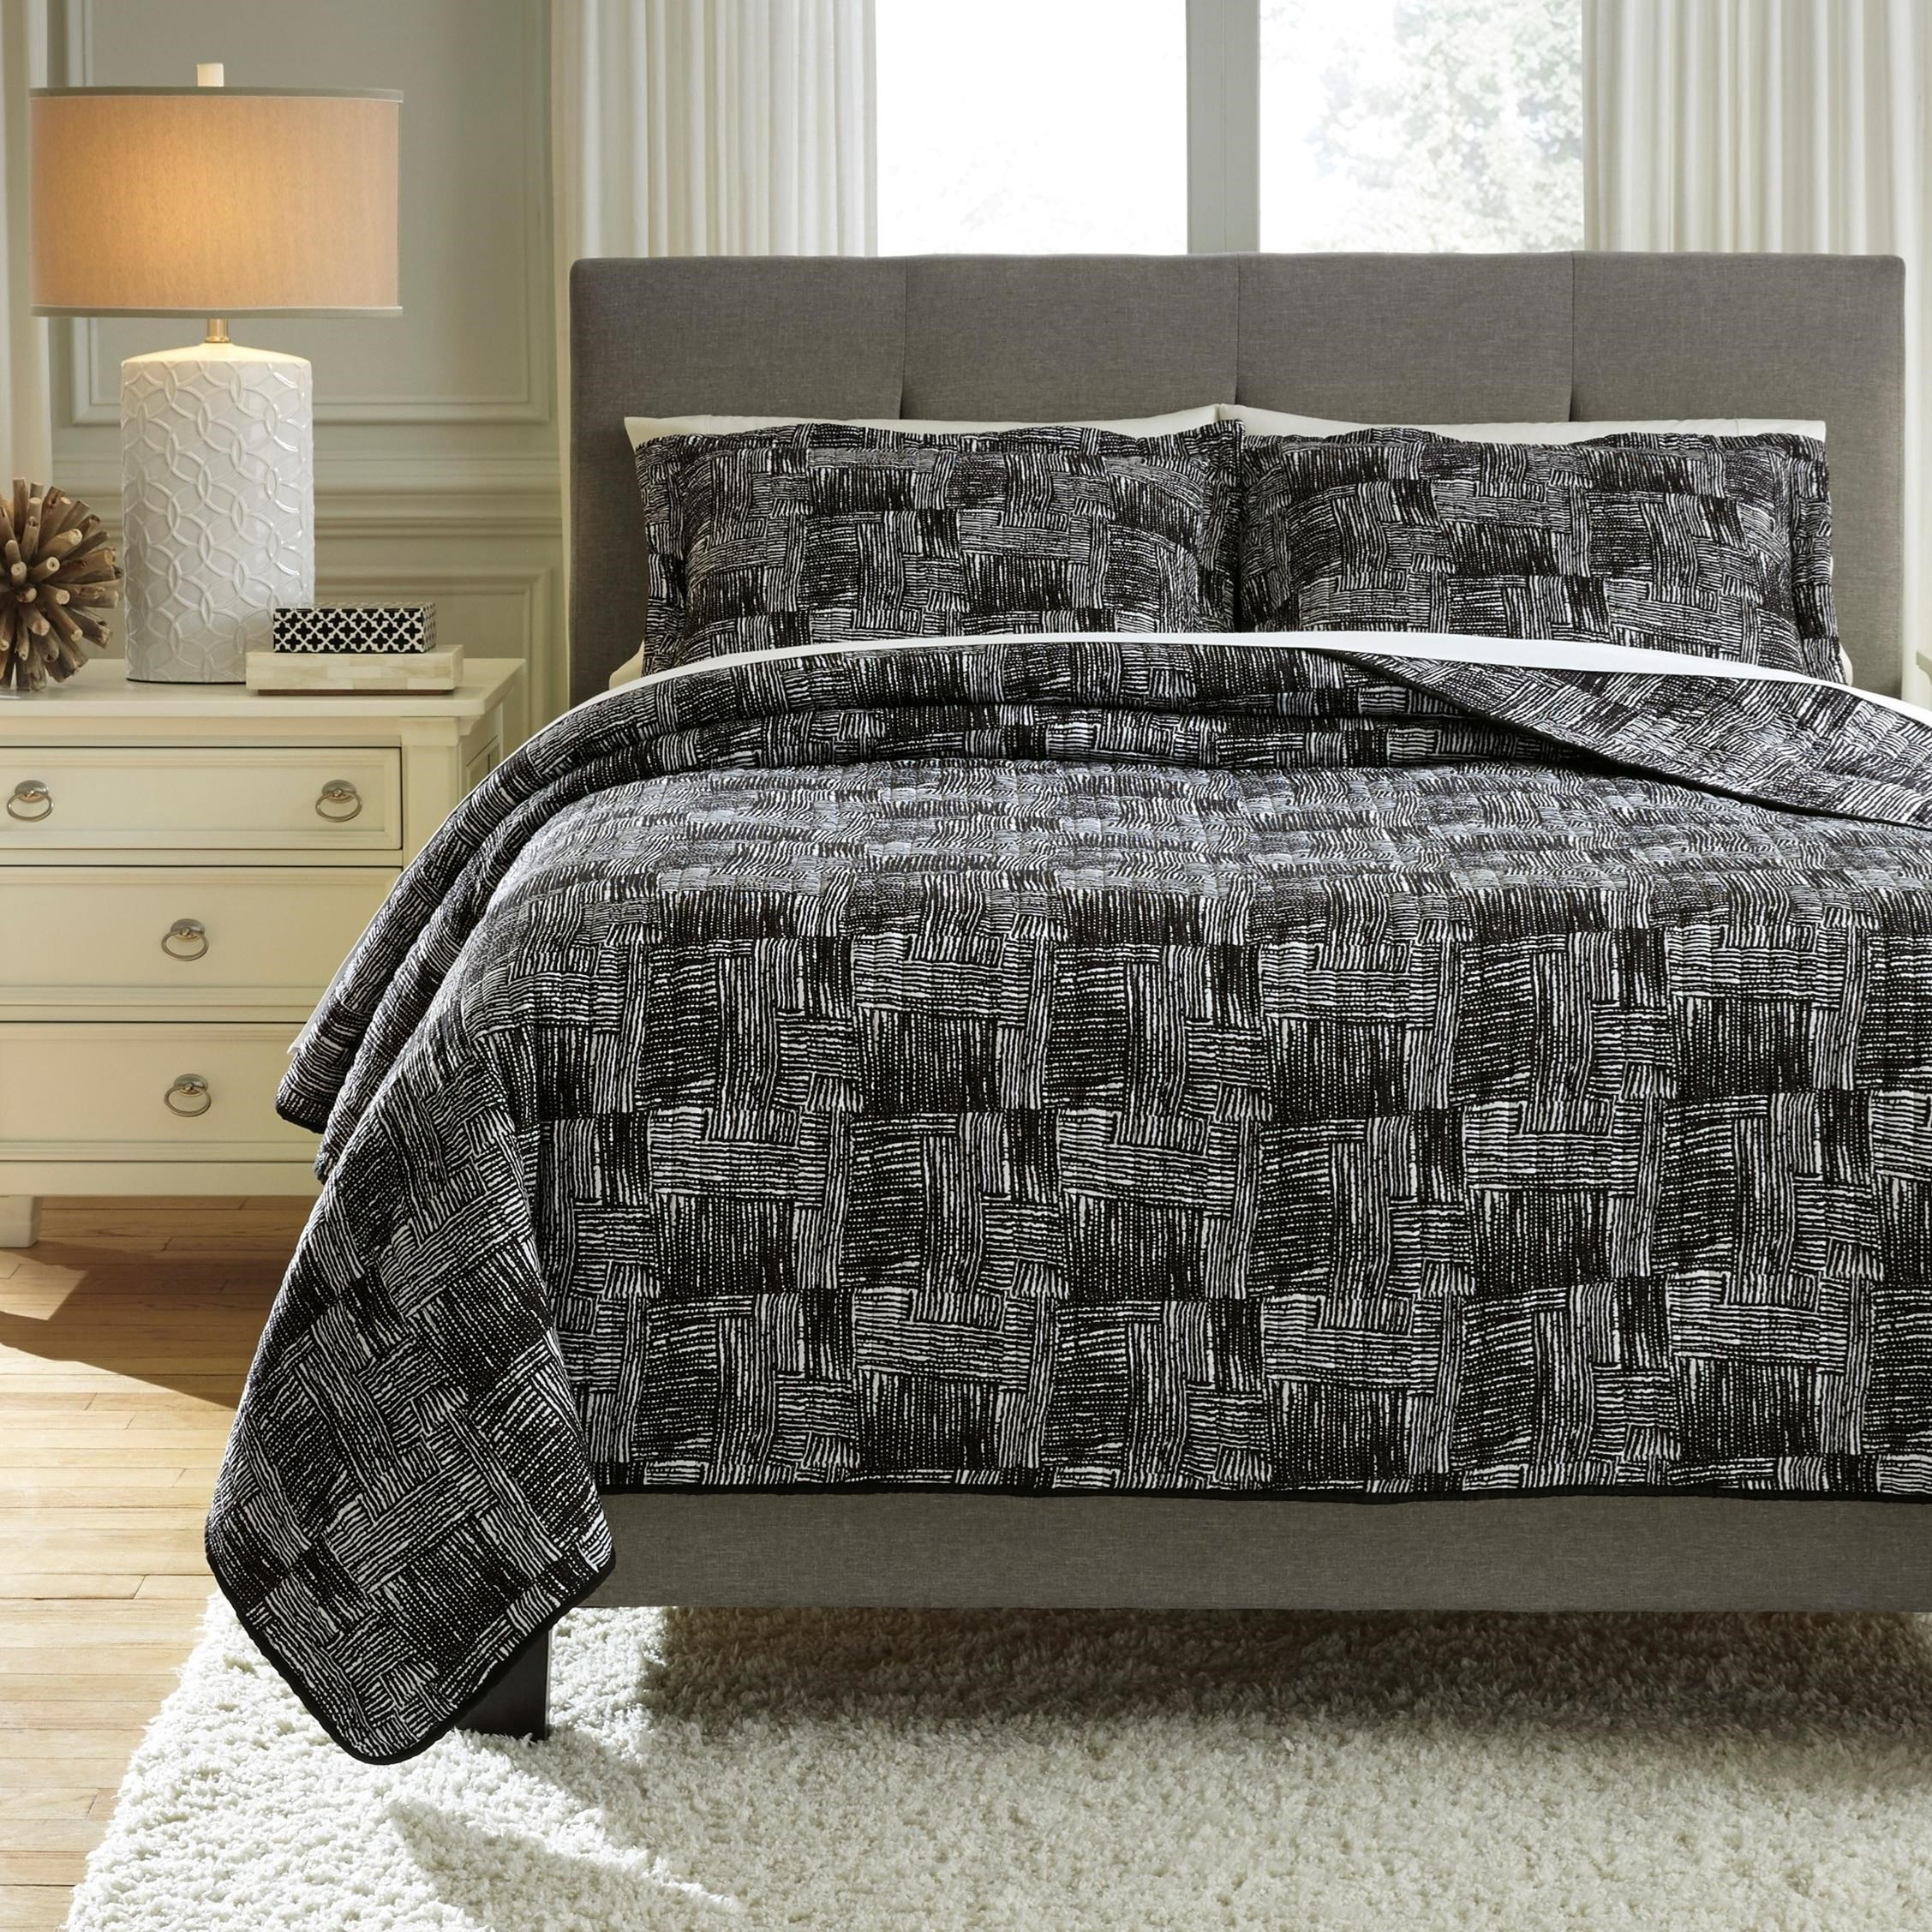 Bedding Sets Queen Jabesh Black Quilt Set by Signature Design by Ashley at Zak's Warehouse Clearance Center